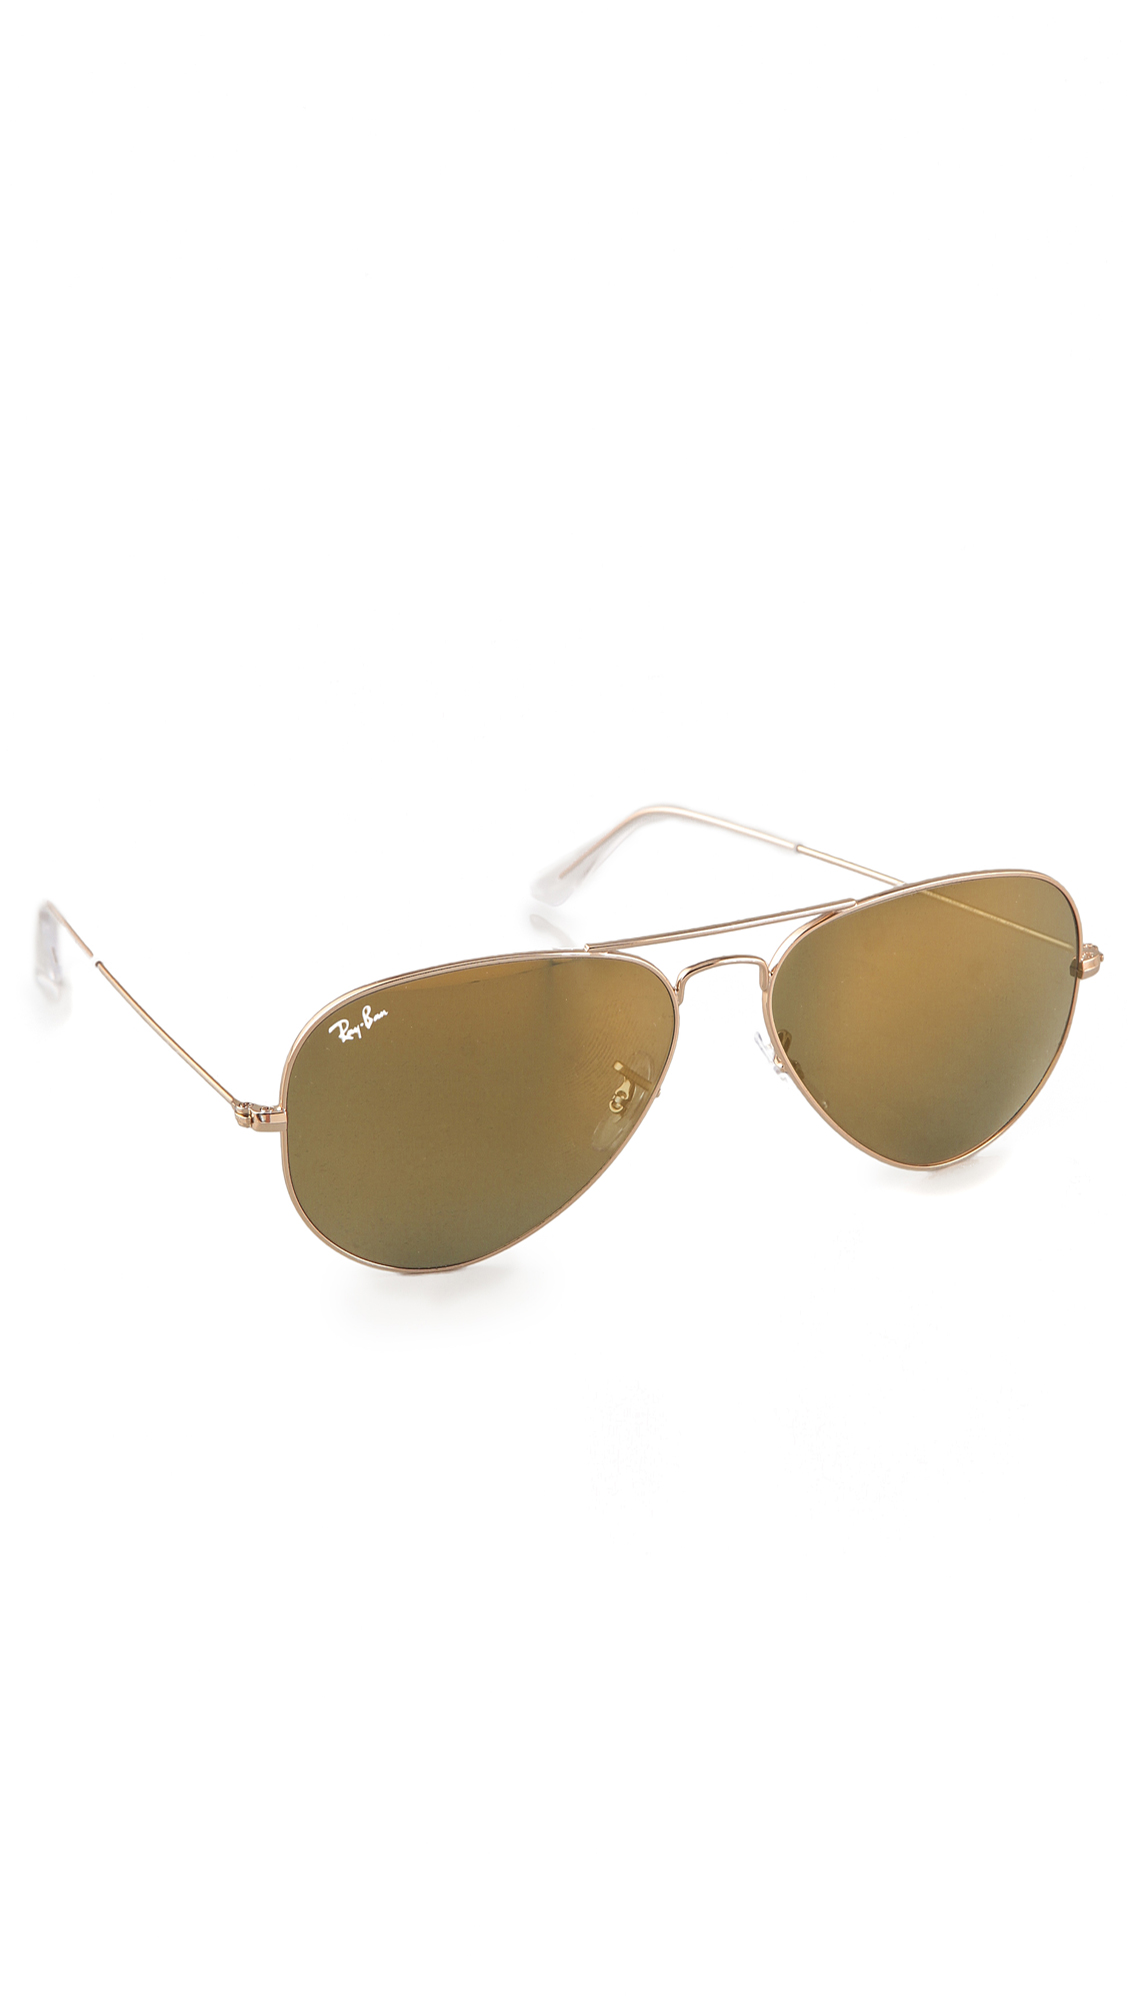 9b8430f231 Ray Ban Sunglasses Aviator Yellow Green « Heritage Malta